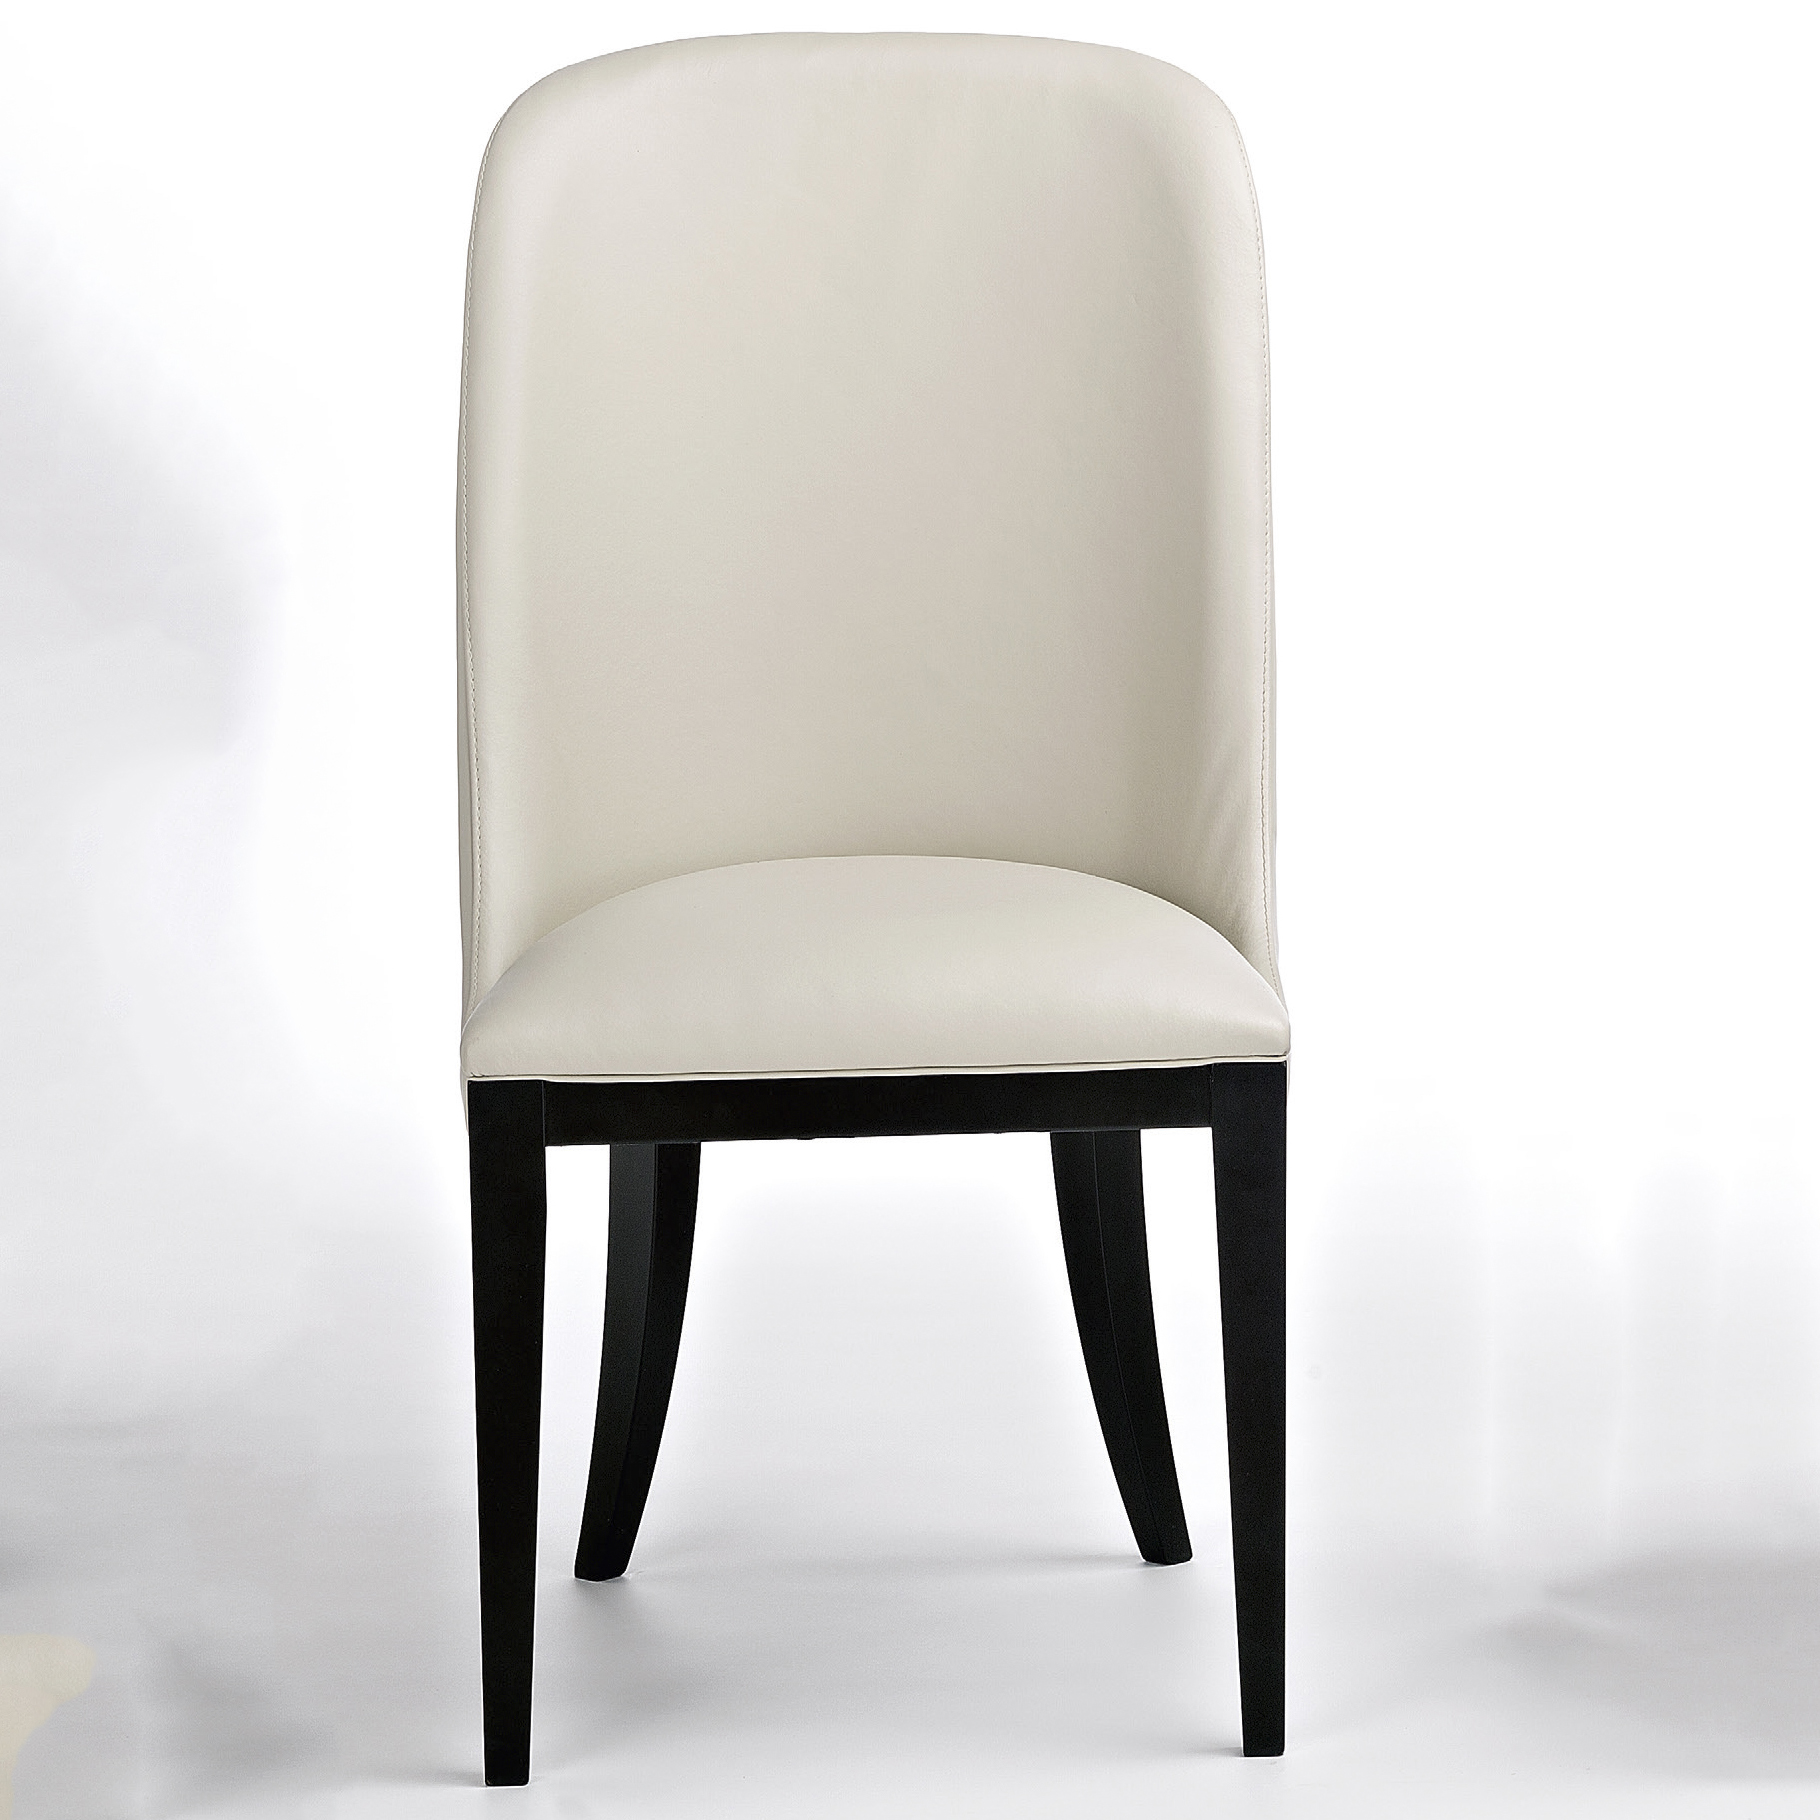 Cream Leather Dining Room Chairs: Flamingo Designer Cream Leather Dining Chair